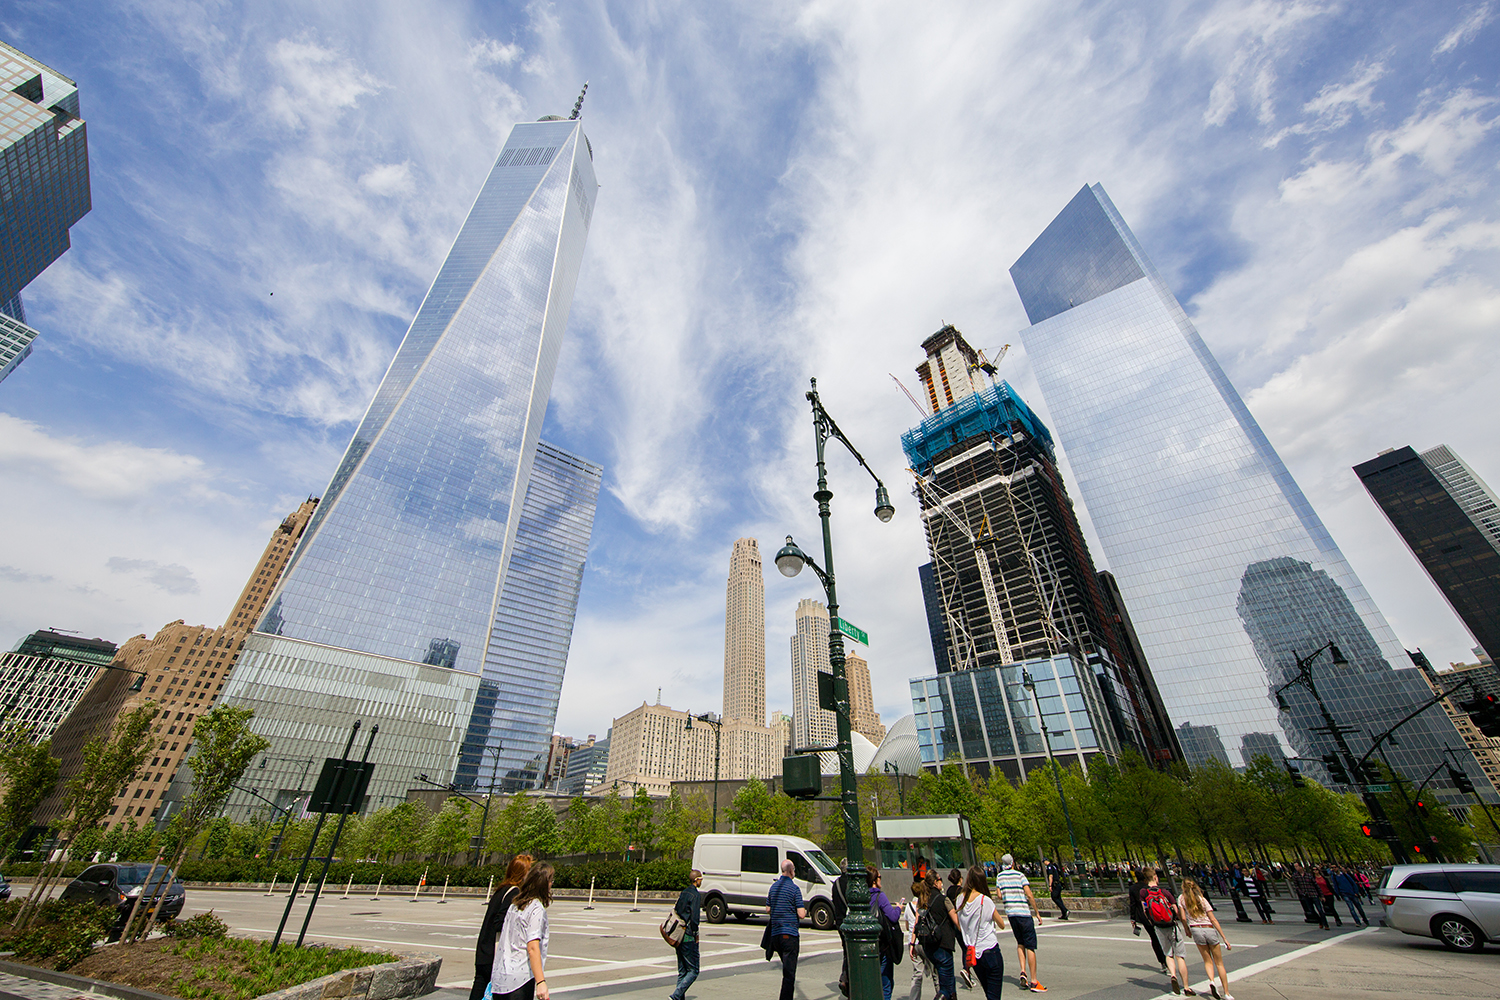 The World Trade Center as seen from West Street and Liberty Street. Credit: Joe Woolhead